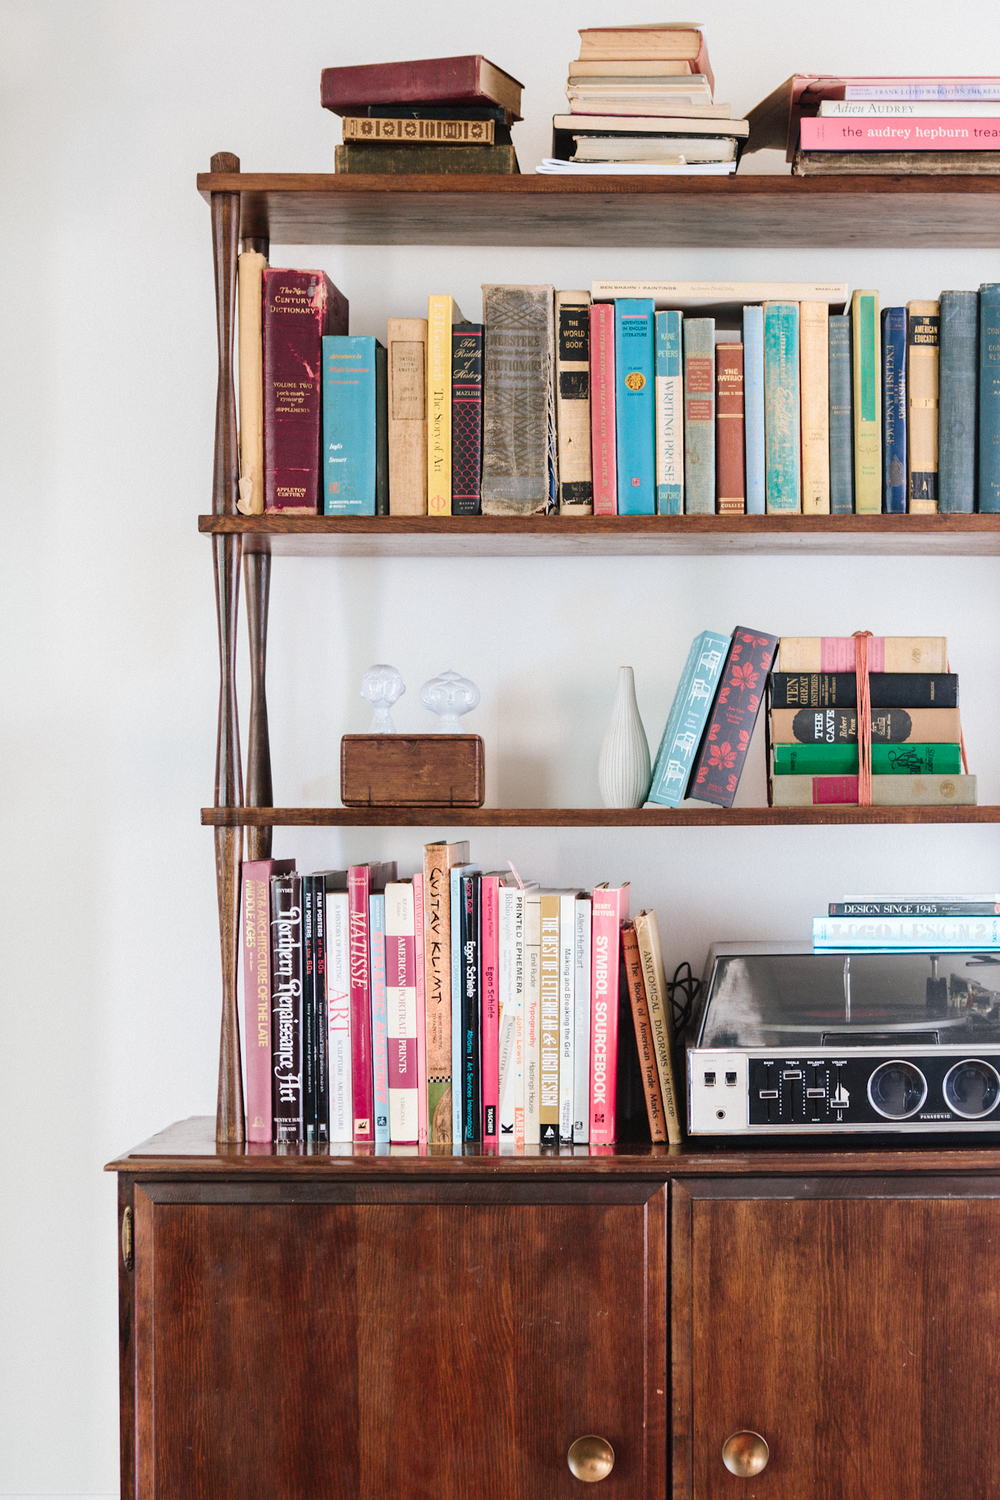 The Vintage Bookshelf Was A Thrift Store Find Shelves Hold Jesses Collection Of Design Books And His Record Player As Well Kates History